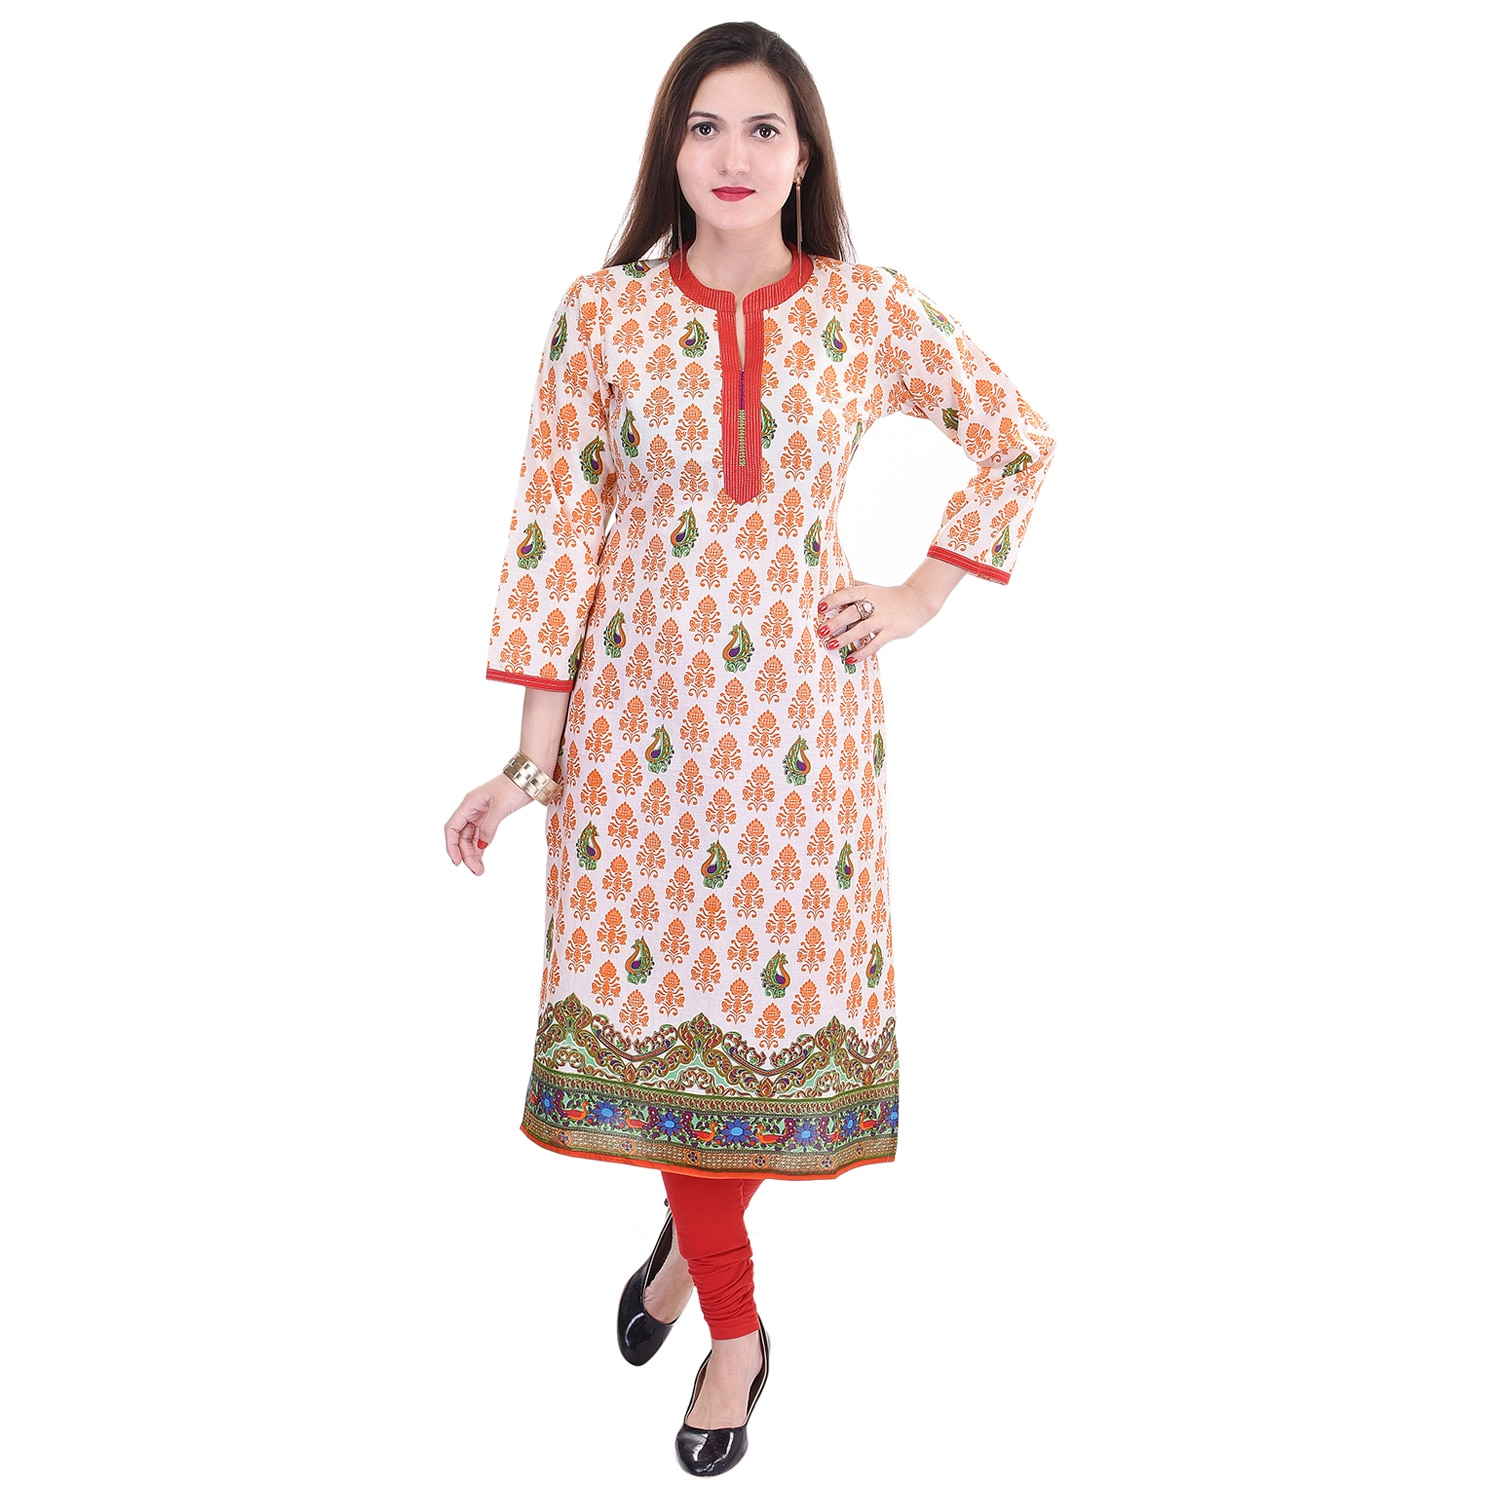 This is Cotton Printed Kurti with small embroidery on fashion patti with zari. We have large range of Embroidery Kurtis with Quality Fabric, Fine stitching, Unique Design. We are Manufacturer of all types of Kurtis in Jaipur Rajasthan.